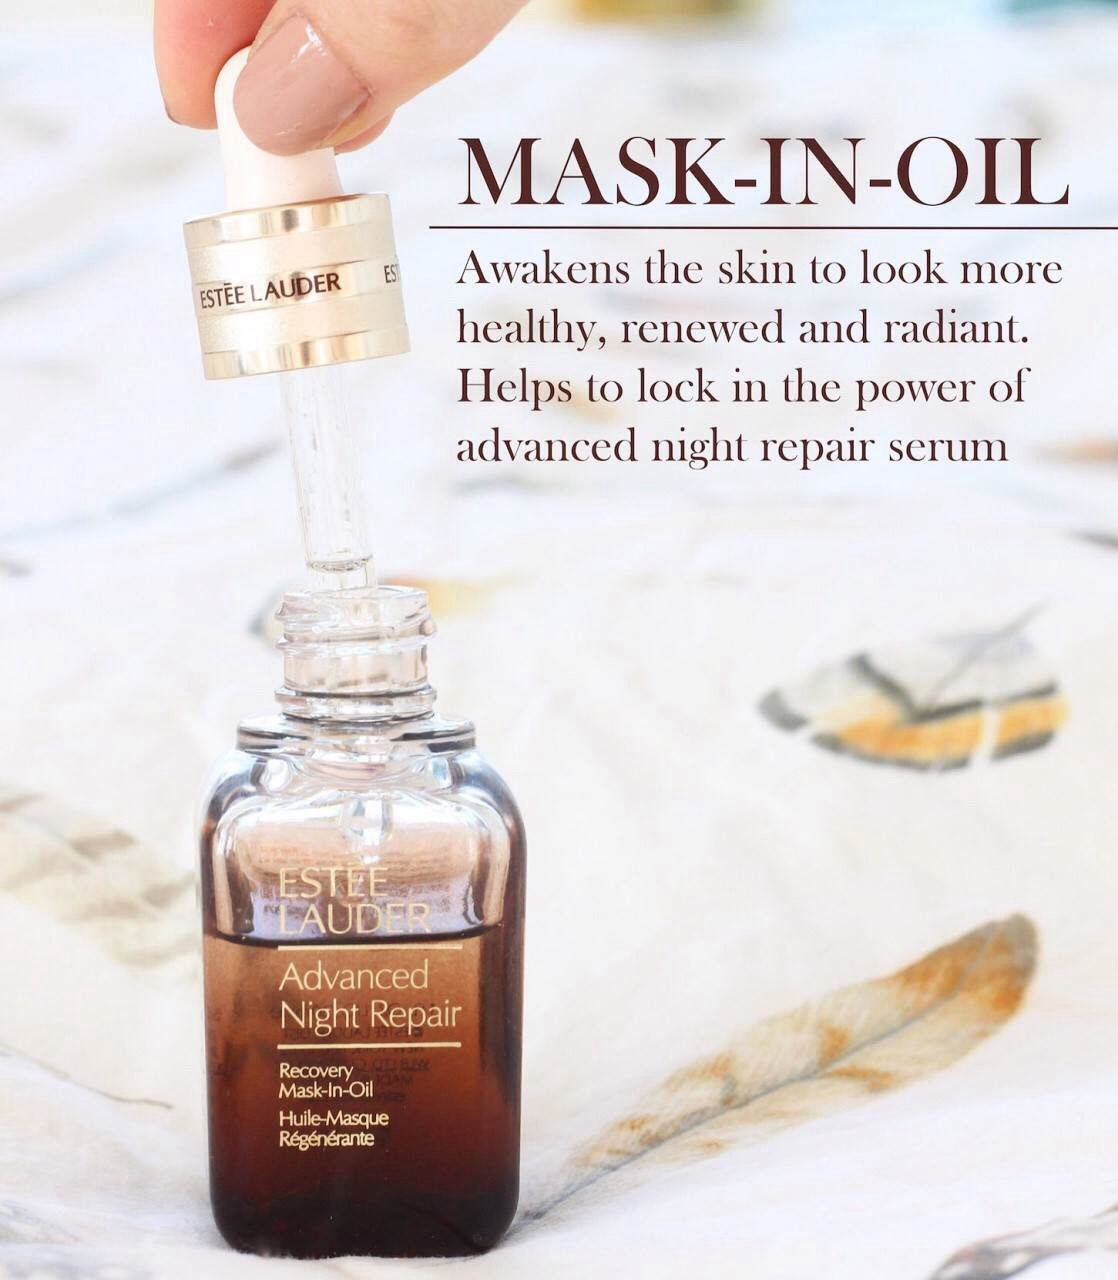 #Estee Lauder Advanced Night Repair Recovery Mask In Oil